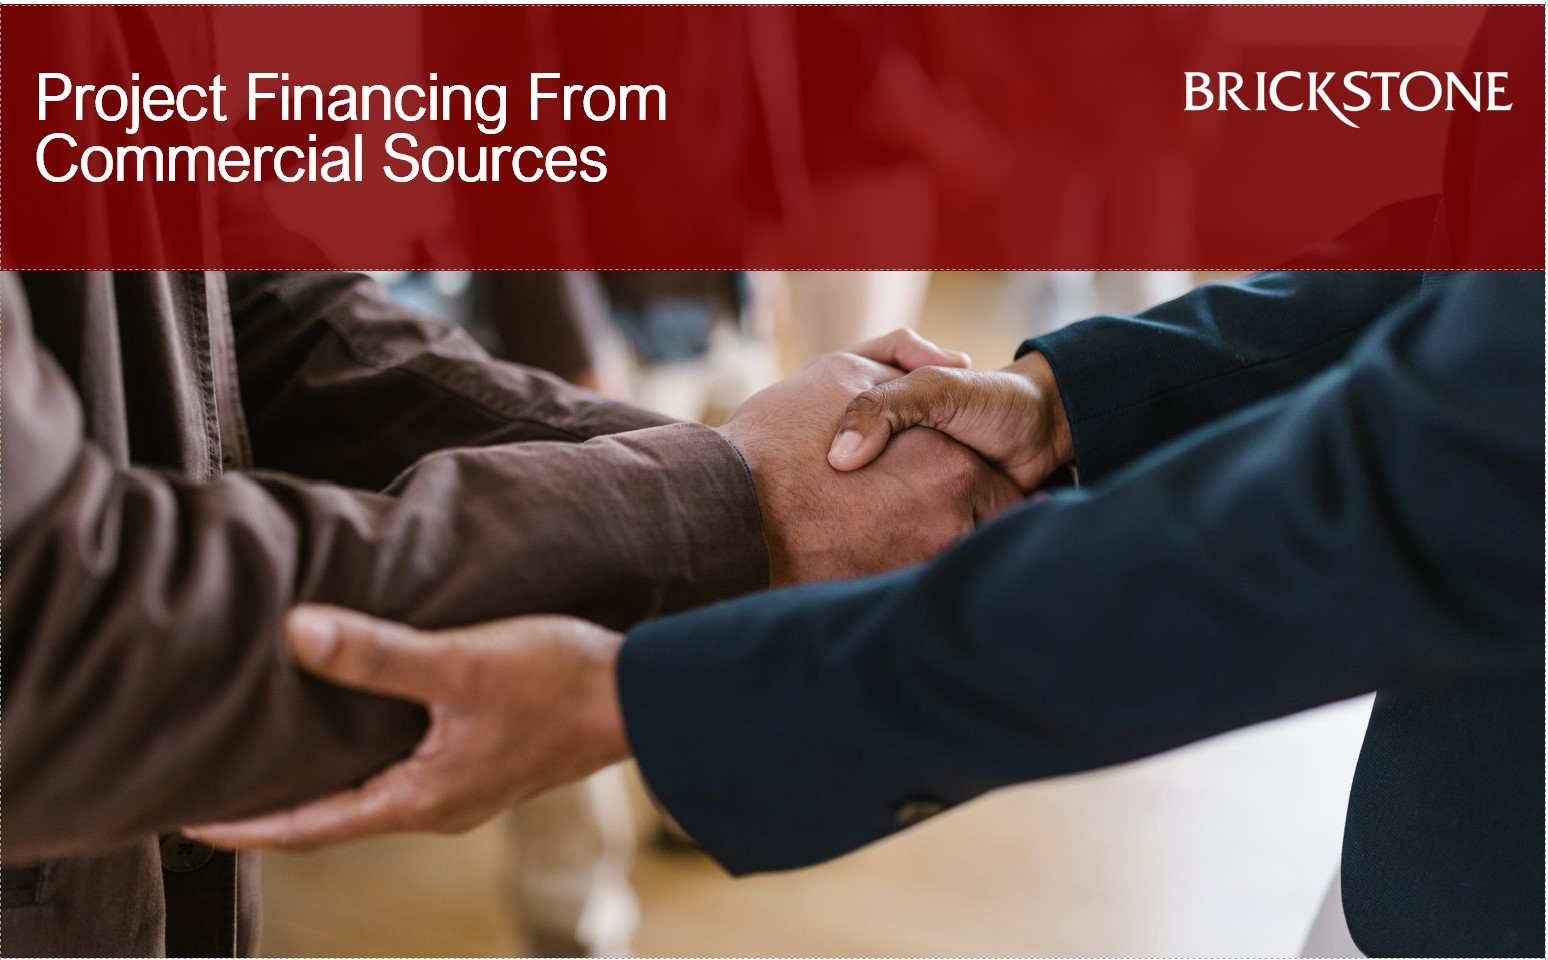 Project Financing from Commercial Sources